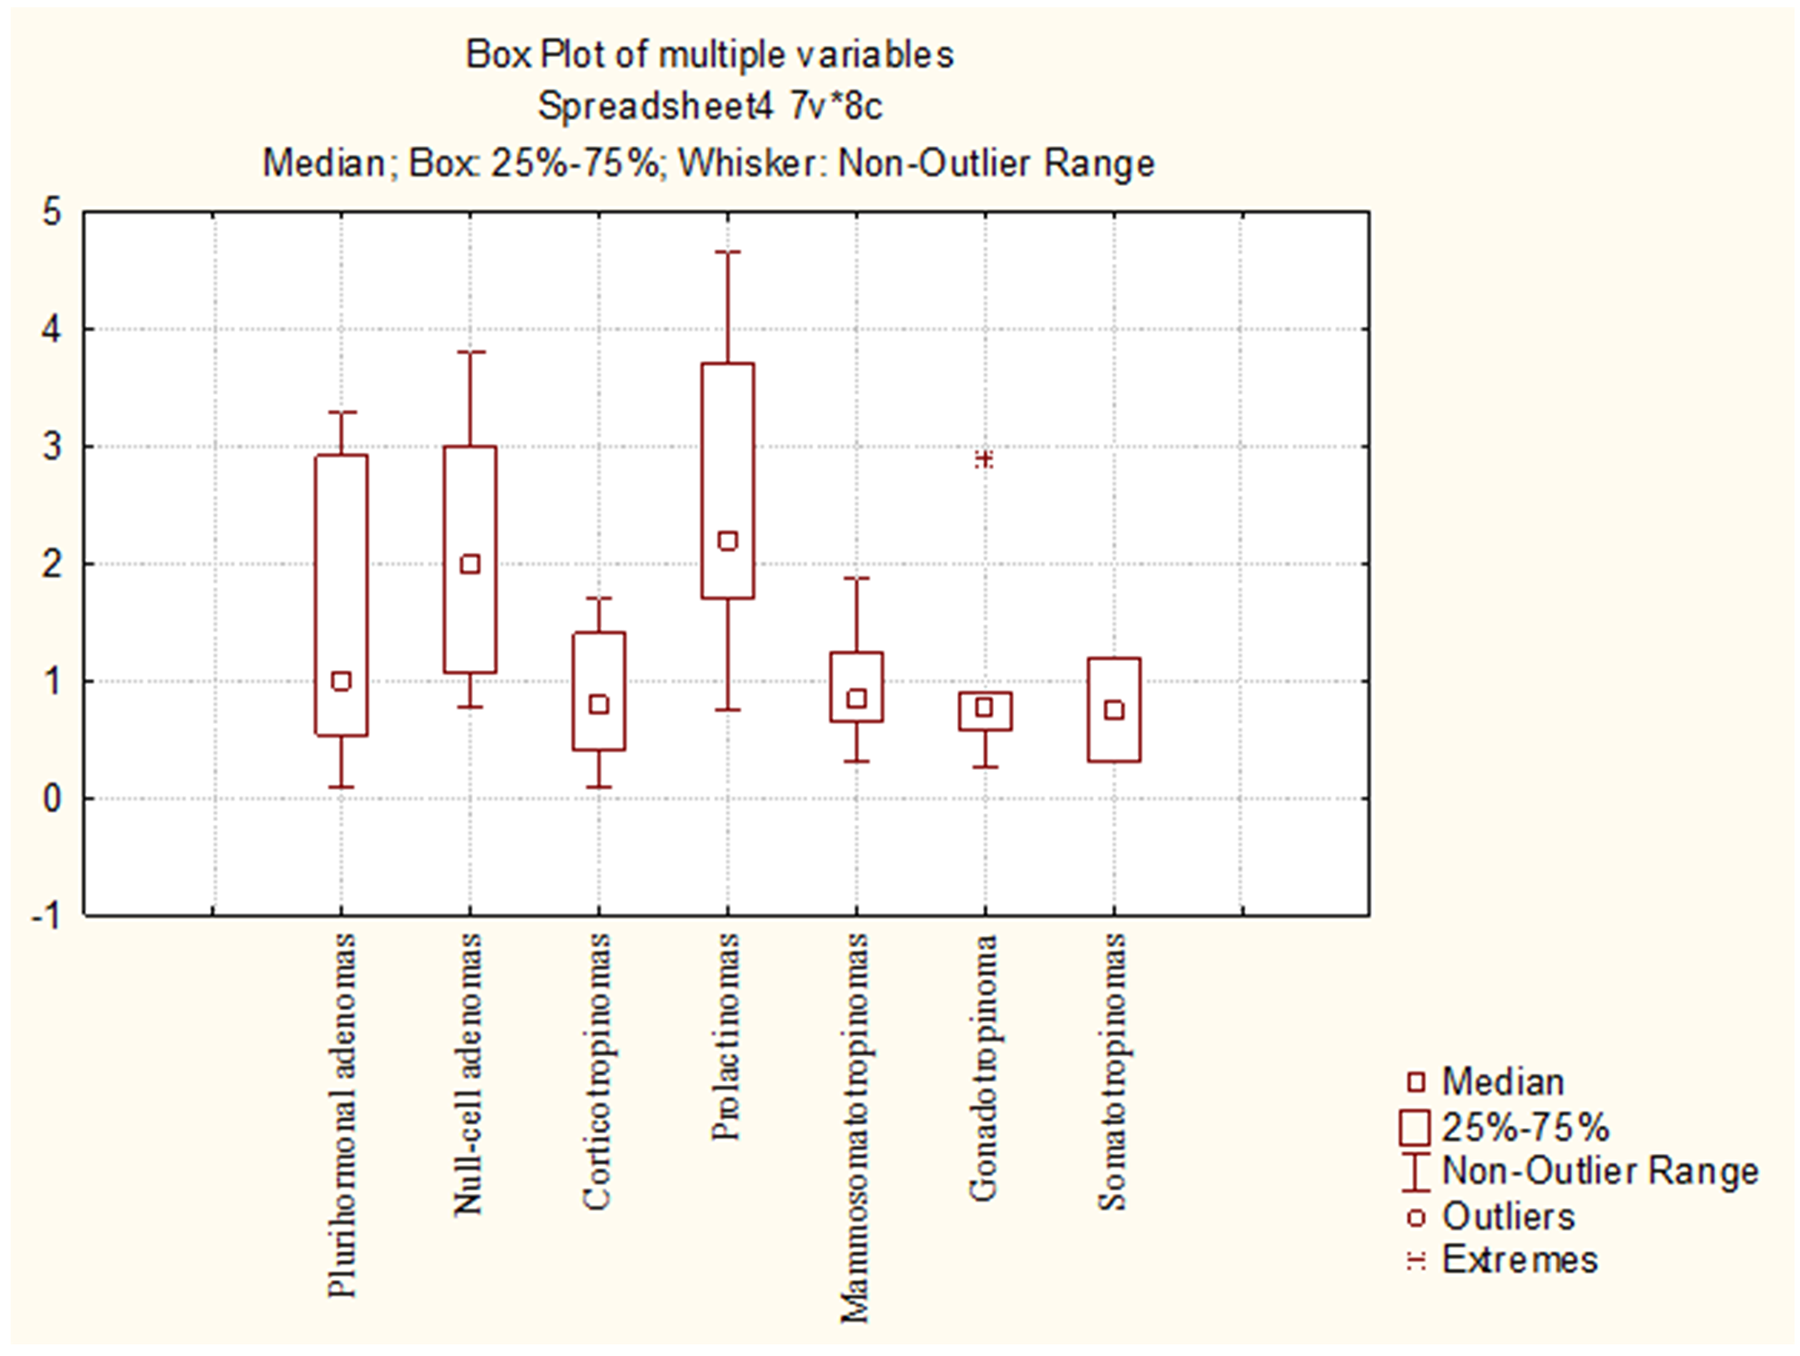 Mean Ki-67 values in different pituitary adenoma groups.